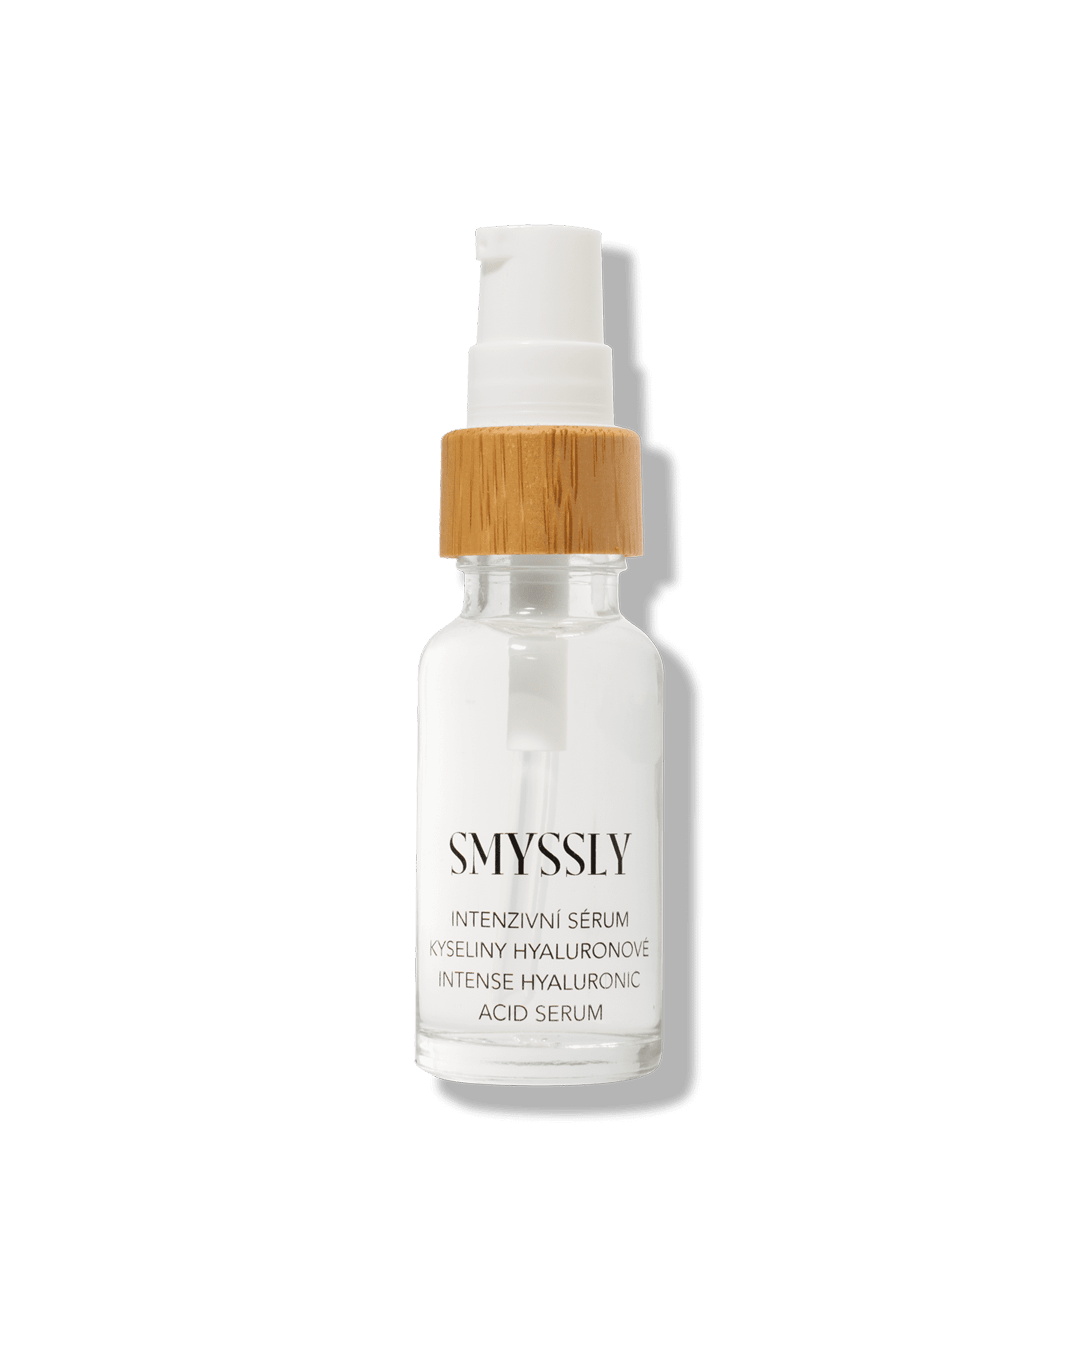 Intense Hyaluronic Acid Serum 4%